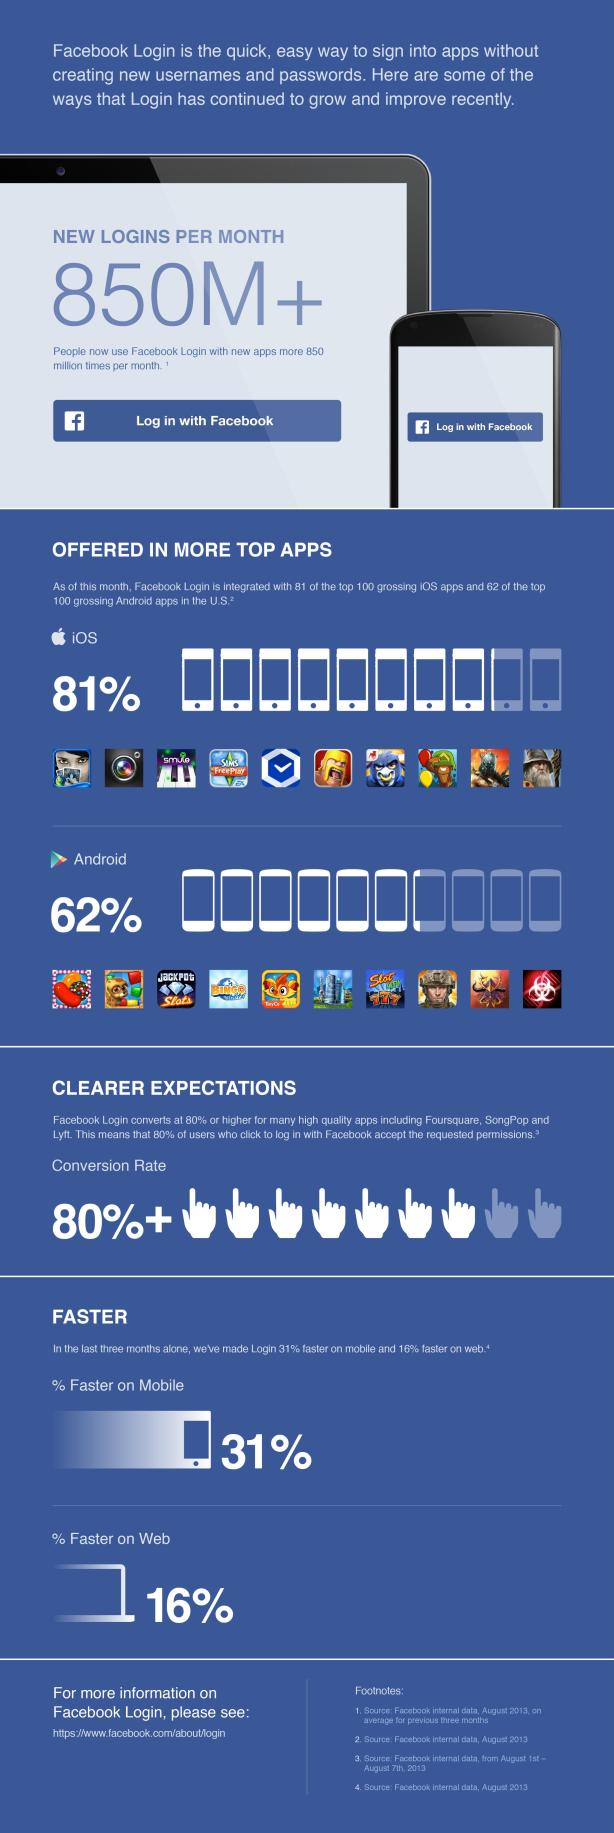 Facebook Login infographic